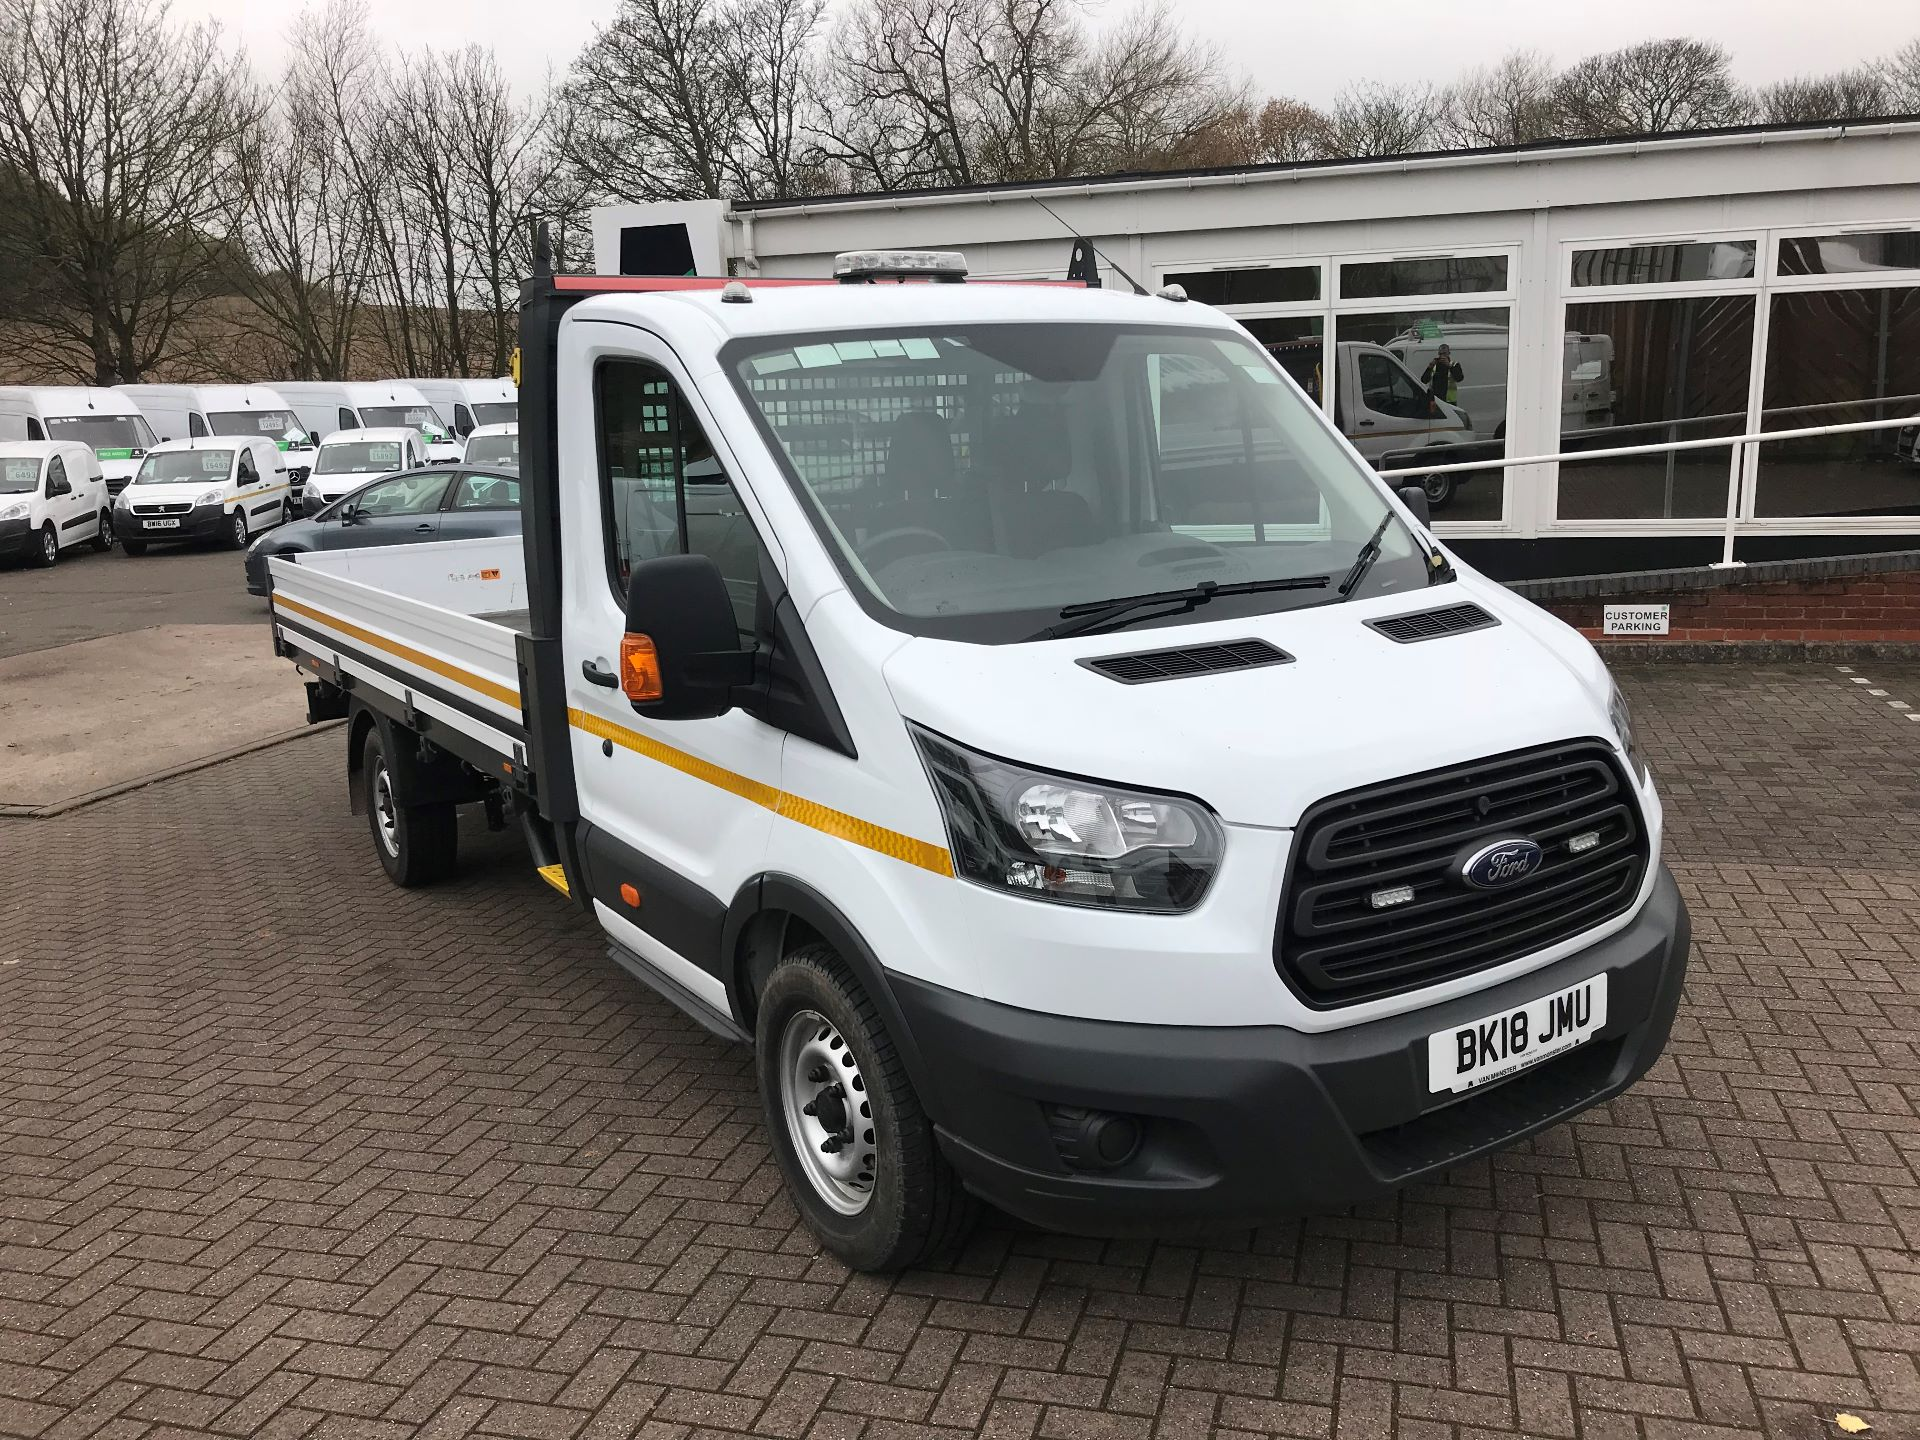 2018 Ford Transit T350 13FT DROPSIDE 130PS EURO 6 (BK18JMU)